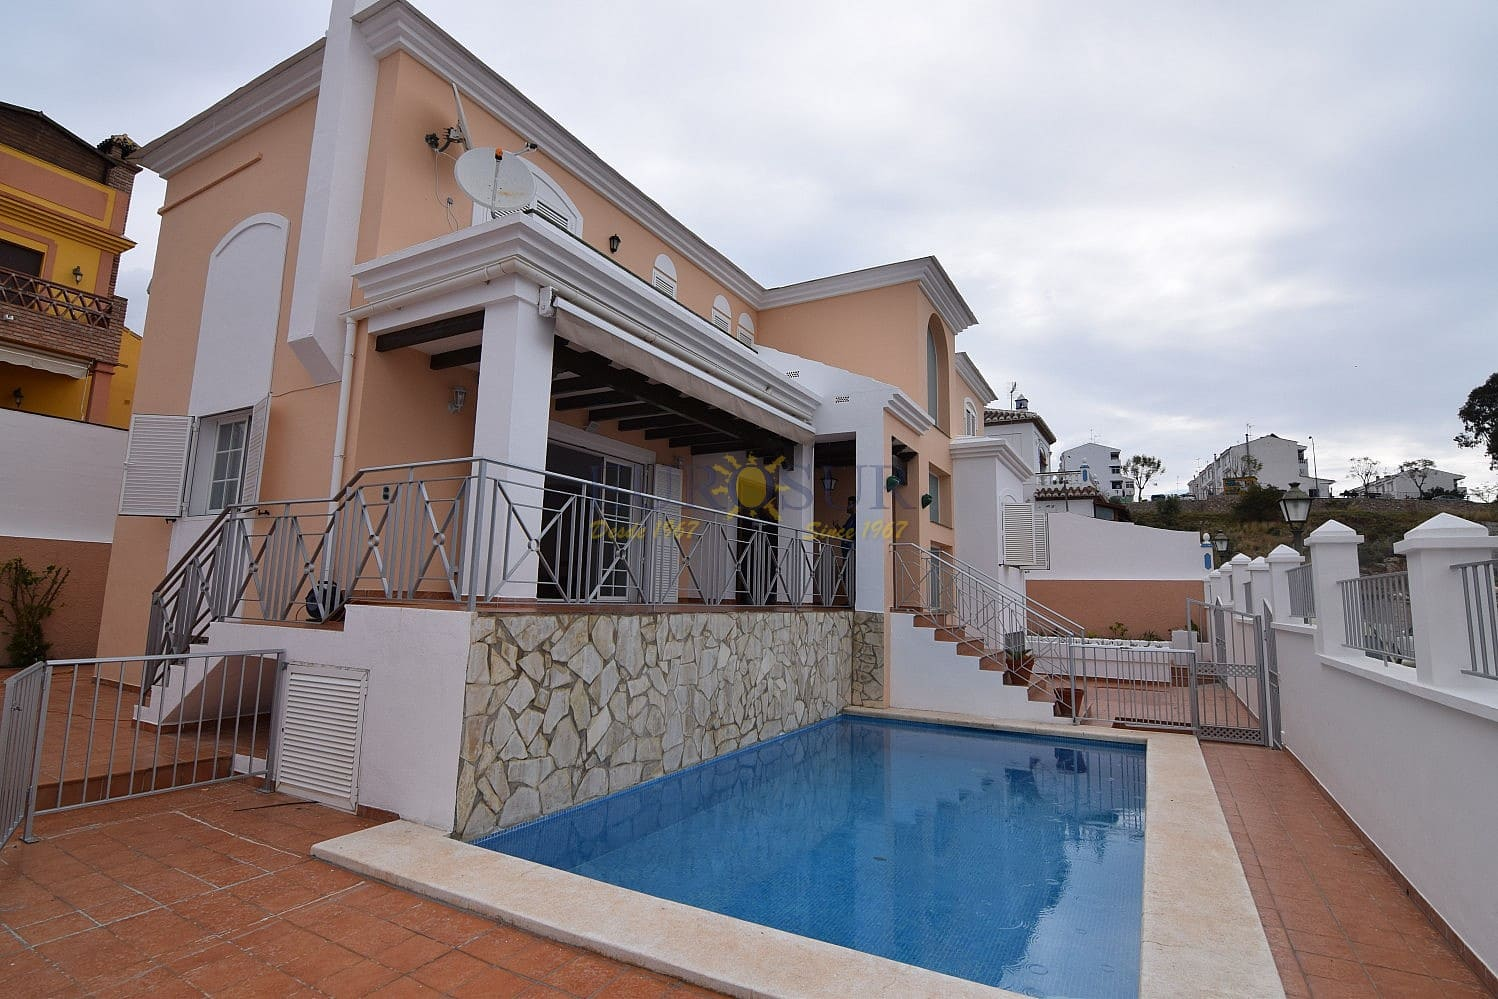 5 bedroom Townhouse for sale in Nerja with pool - € 560,000 (Ref: 4526425)